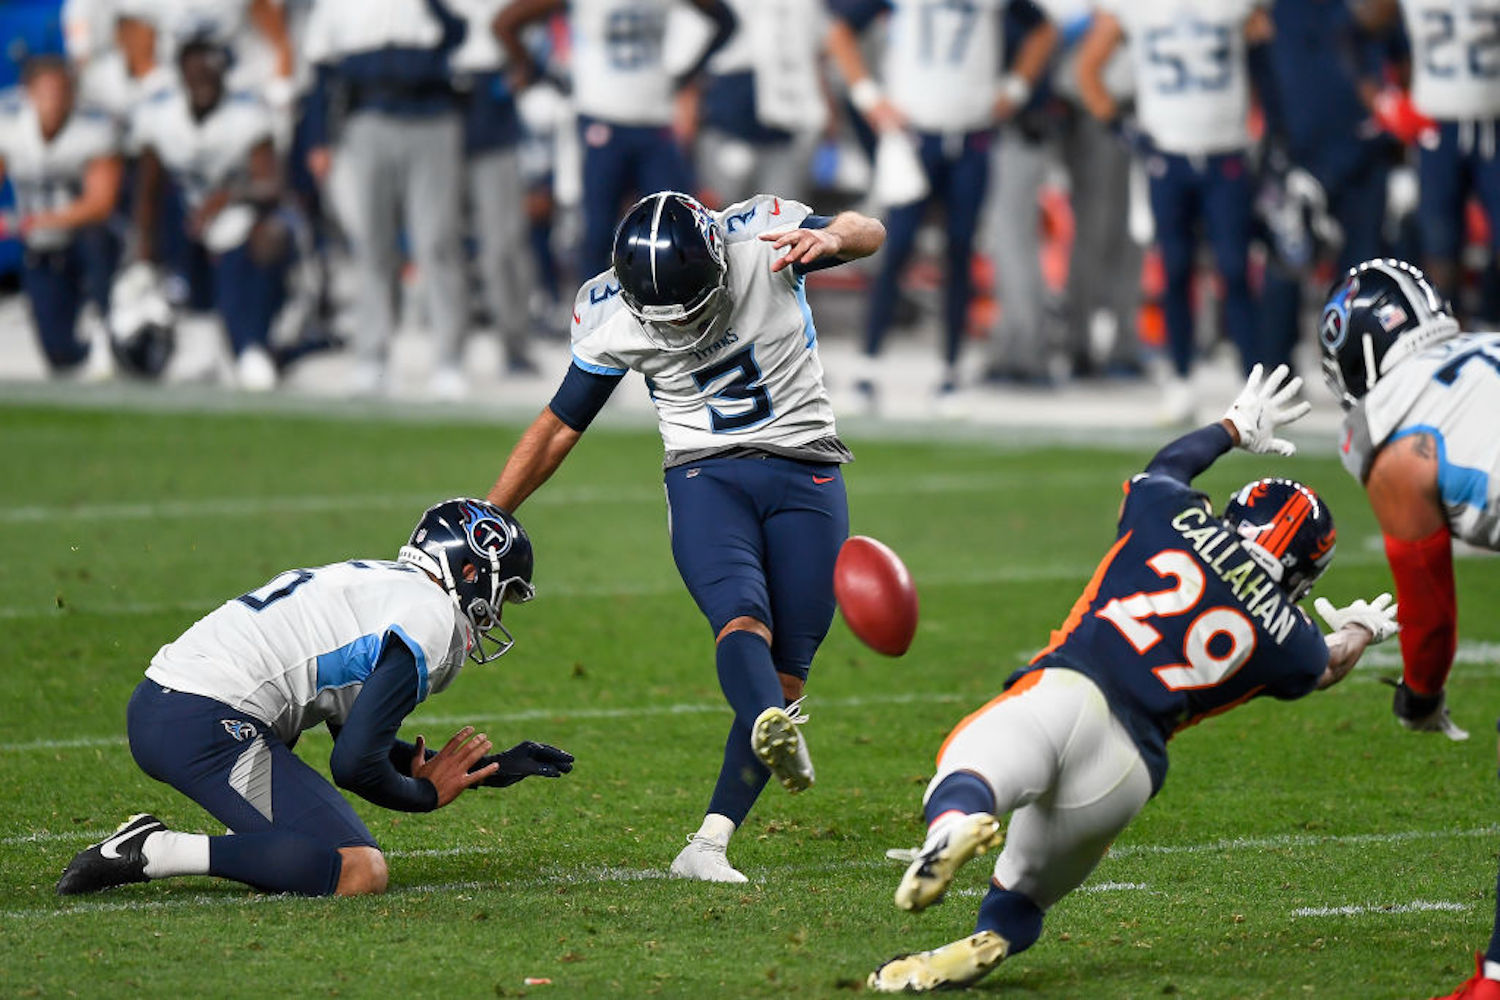 Stephen Gostkowski redeemed himself by making the game-winning field goal Monday night, but Titans fans shouldn't be too thrilled.